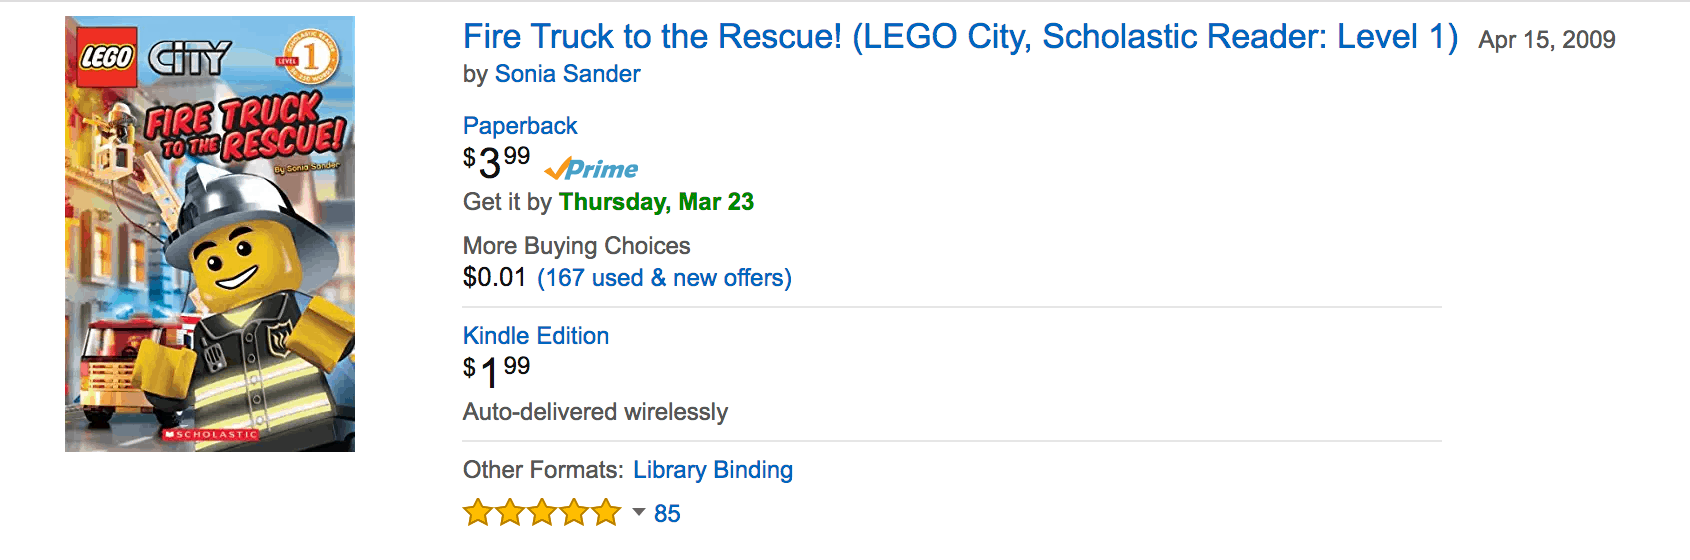 Fire Truck to the Rescue lego book discounted